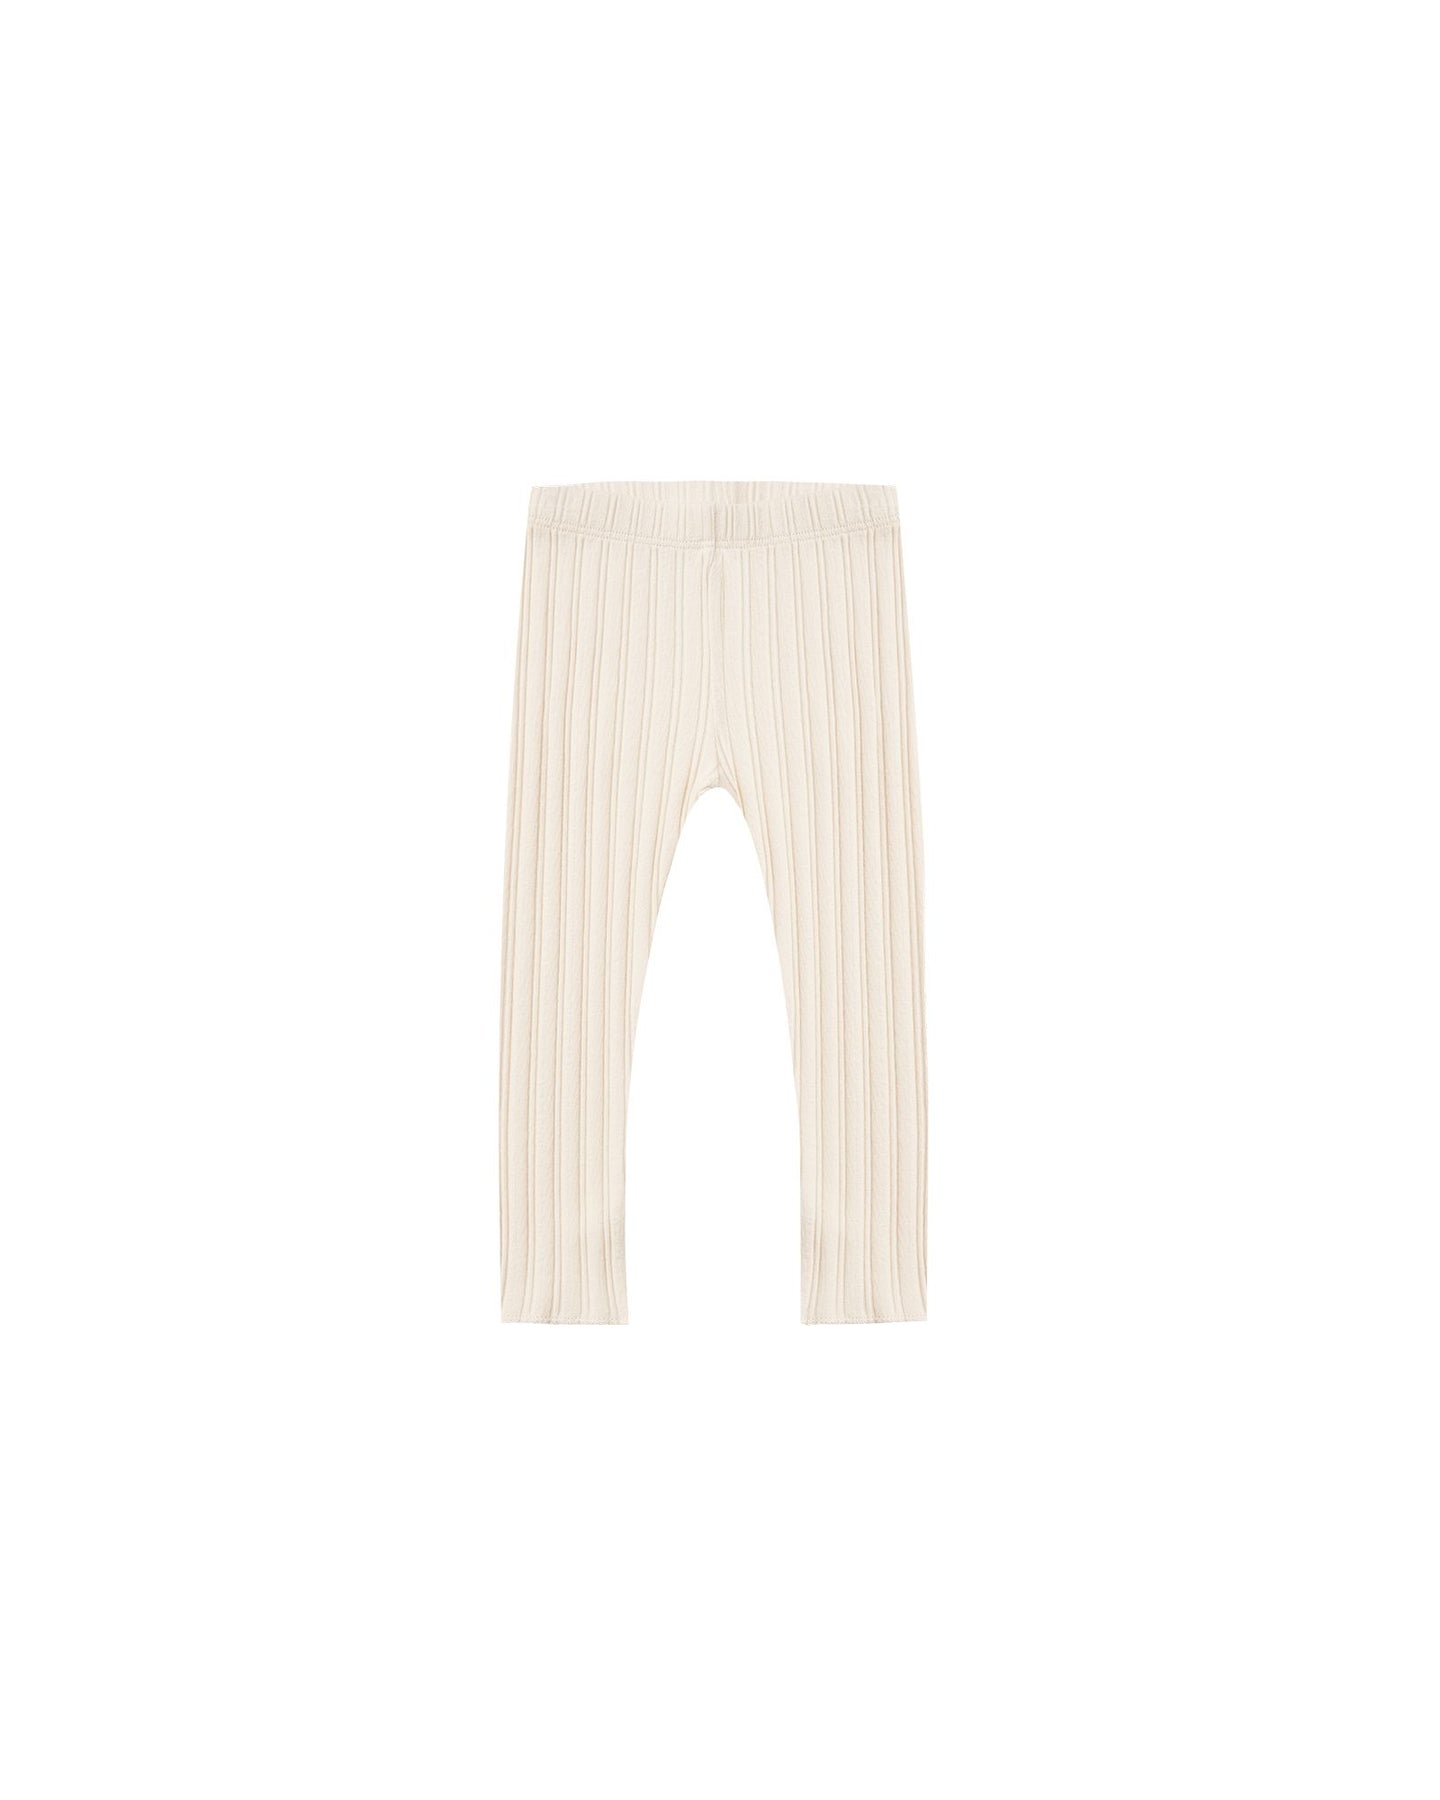 Rylee + Cru - Rib Knit Legging - Natural